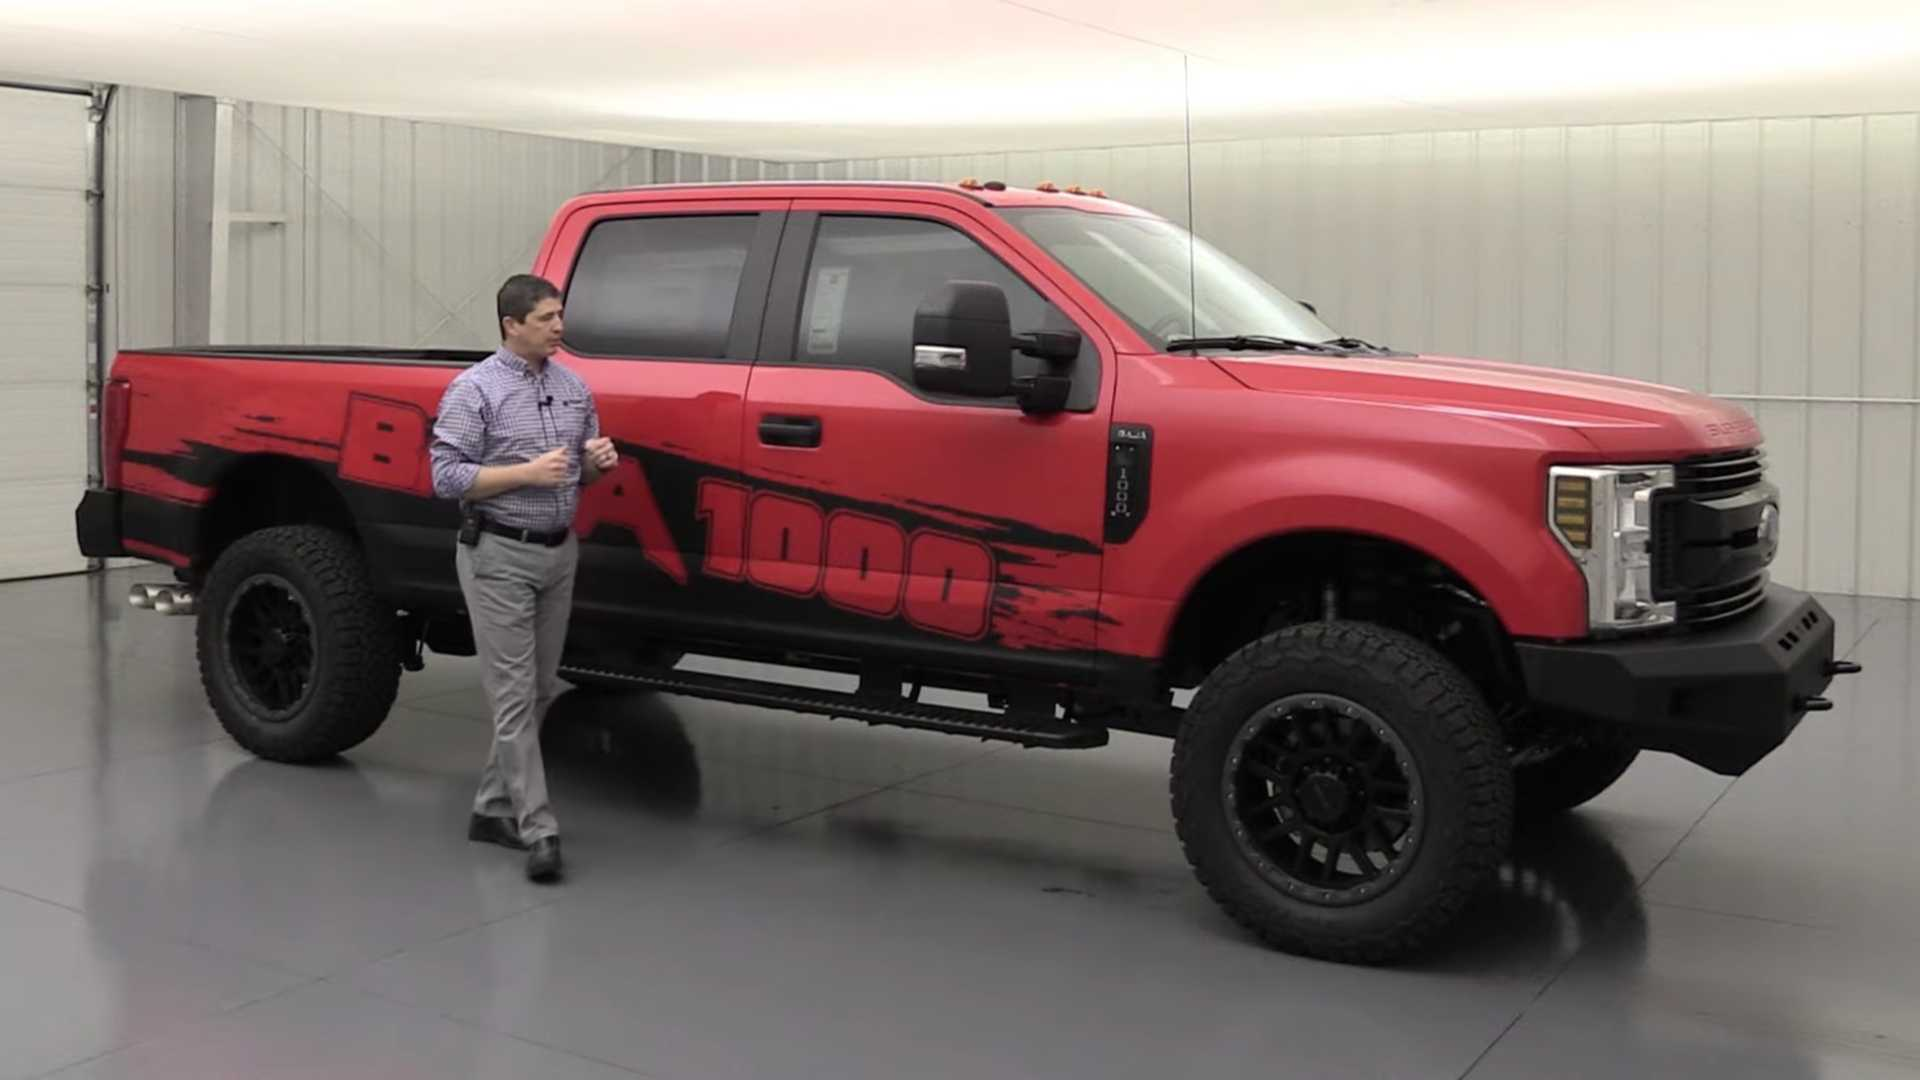 Ford Dealer Selling Baja 1000 Super Duty With Four-Digit Torque